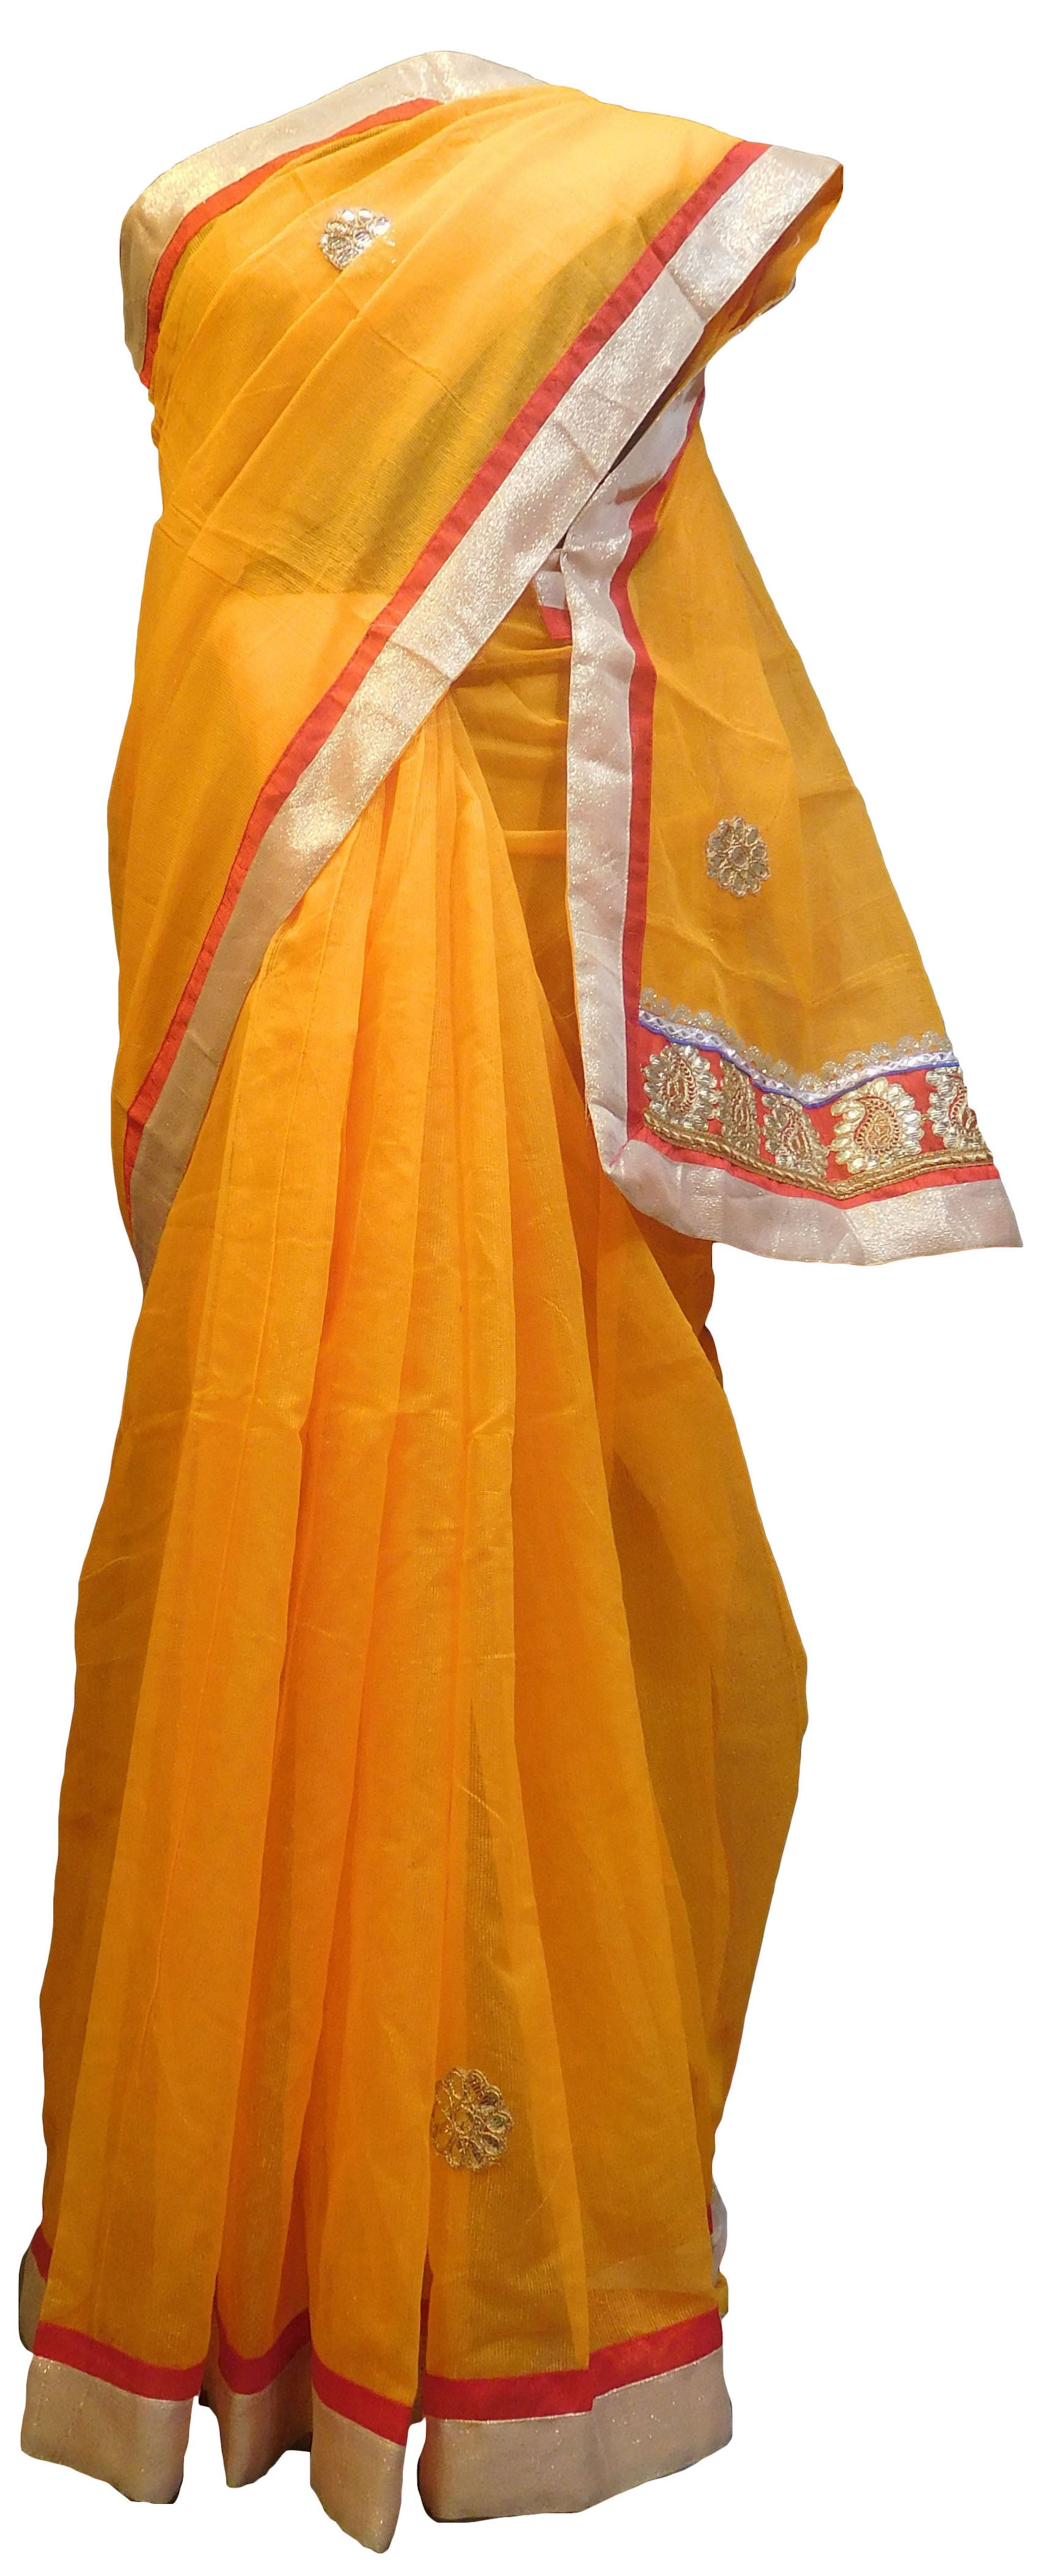 SMSAREE Yellow Designer Wedding Partywear Supernet (Cotton) Zari & Gota Hand Embroidery Work Bridal Saree Sari With Blouse Piece E826